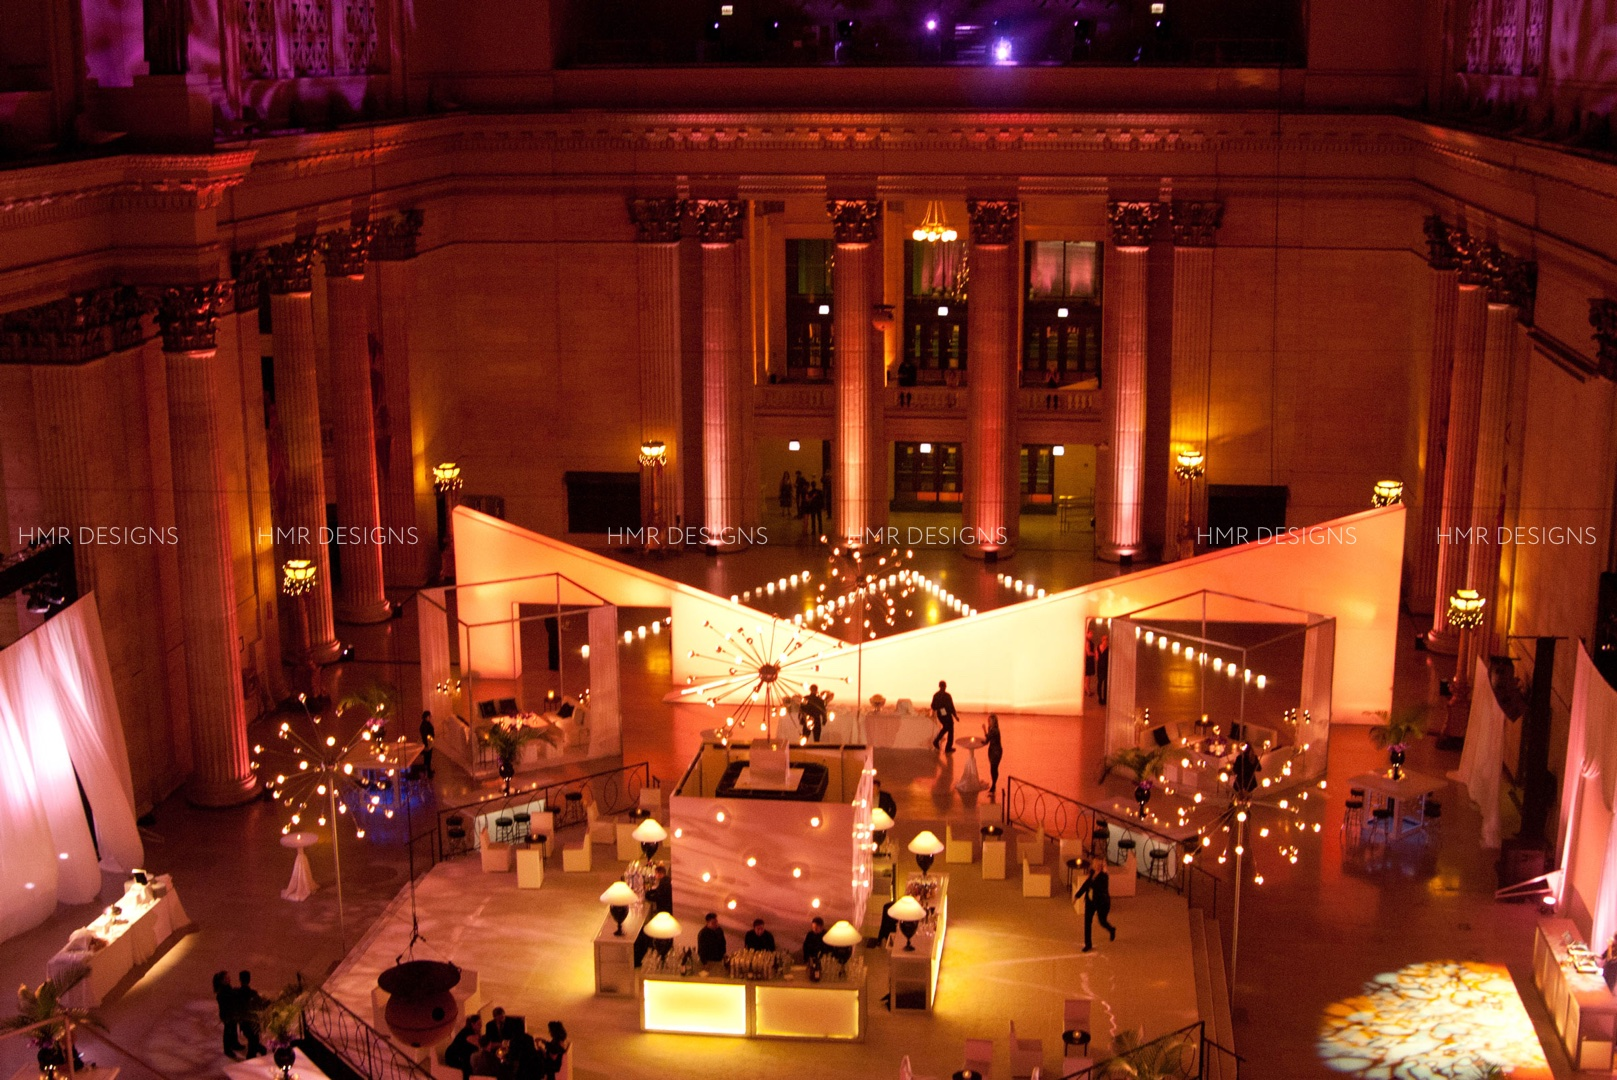 A full room view of a corporate event at Chicago's Union Station with lighting, floral and decor by HMR Designs